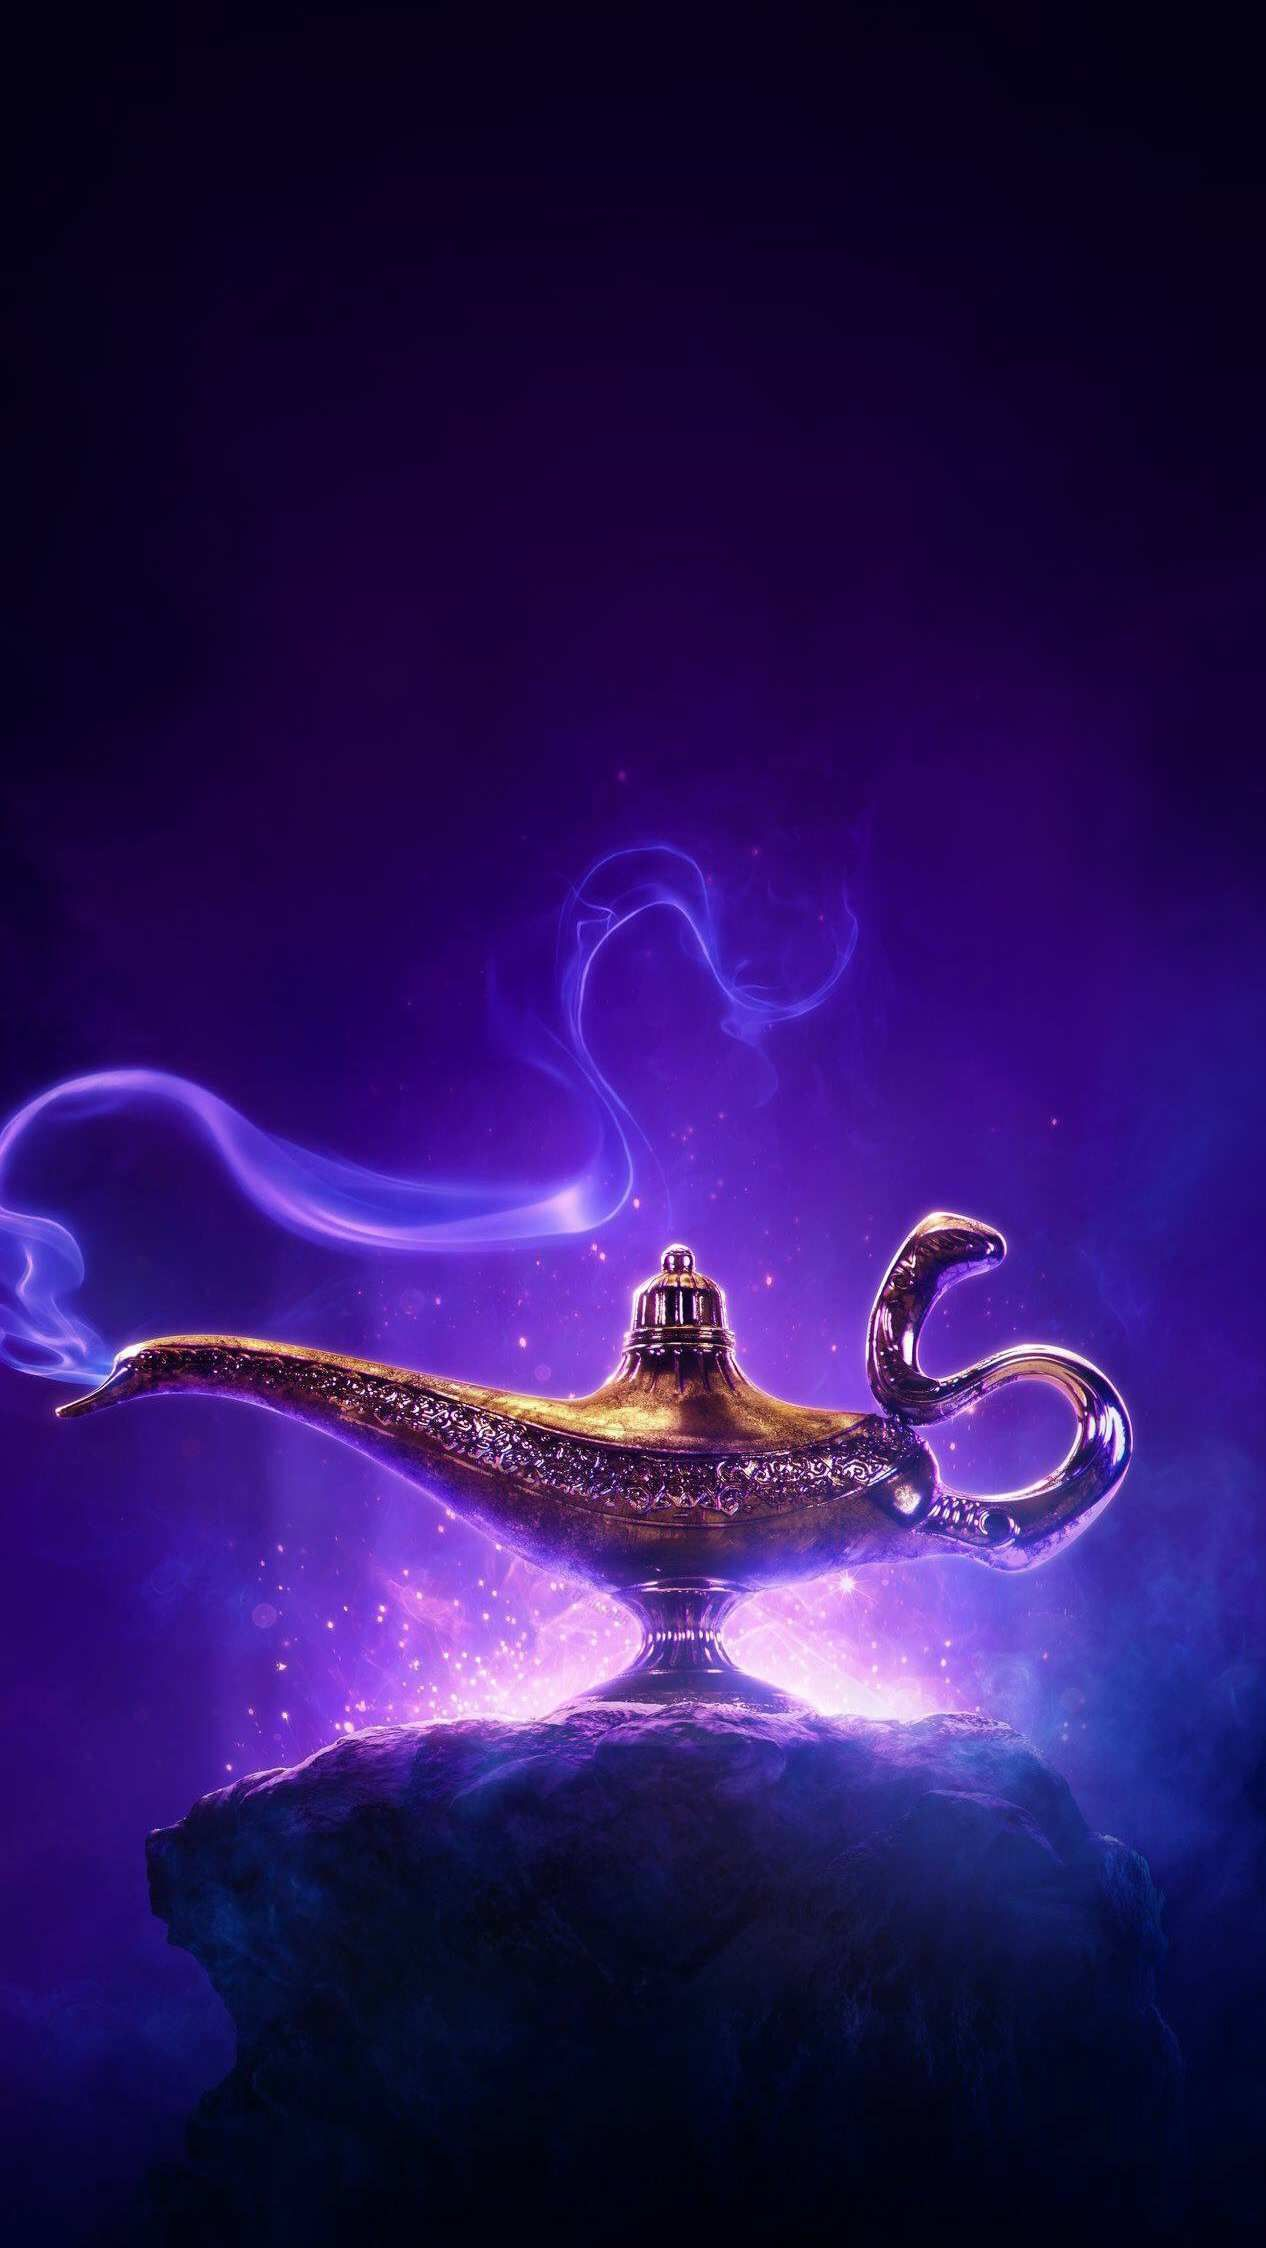 Aladdin Iphone Wallpaper Peliculas De Disney Walt Disney